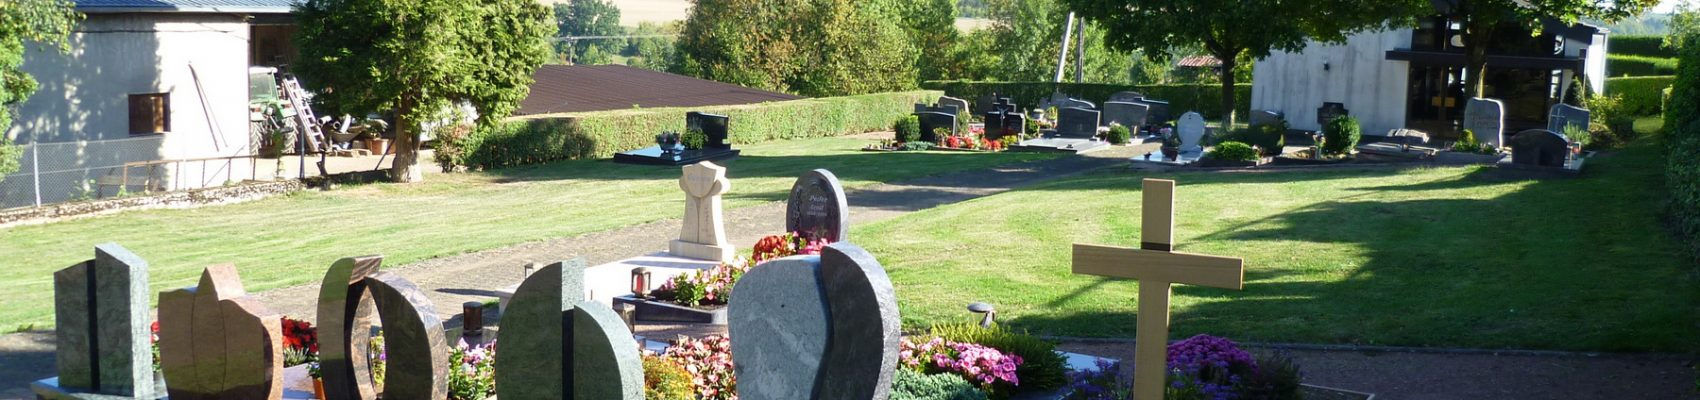 Friedhof Wellingen